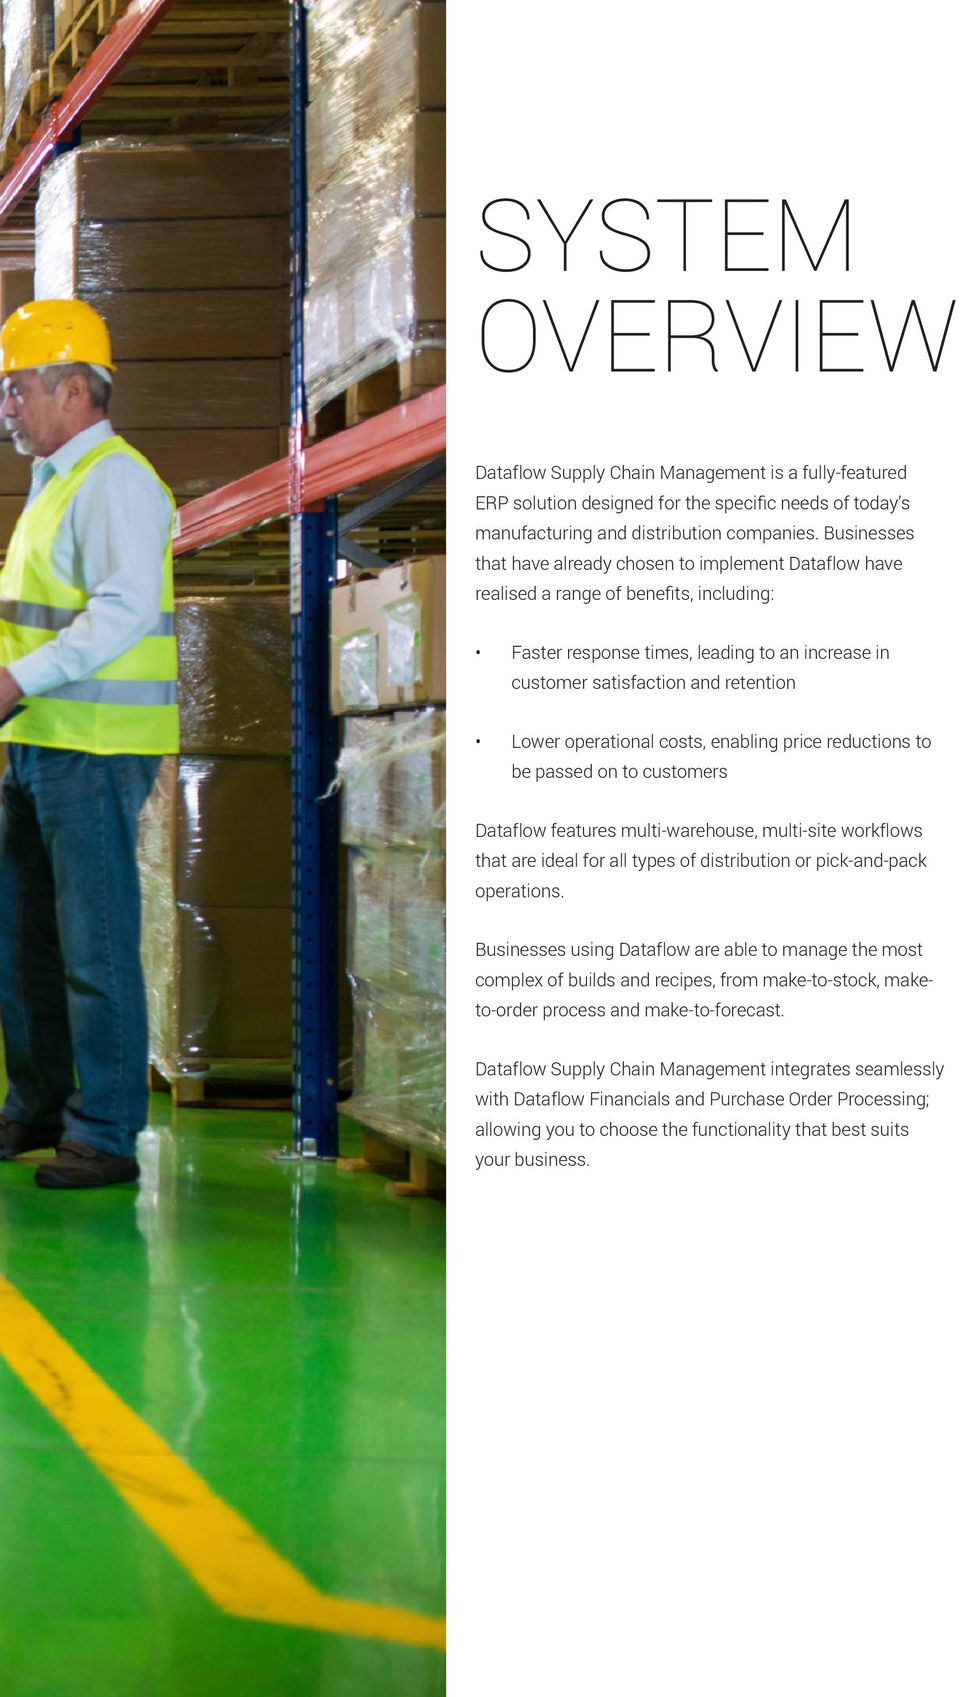 operational costs, enabling price reductions to be passed on to customers Dataflow features multi-warehouse, multi-site workflows that are ideal for all types of distribution or pick-and-pack